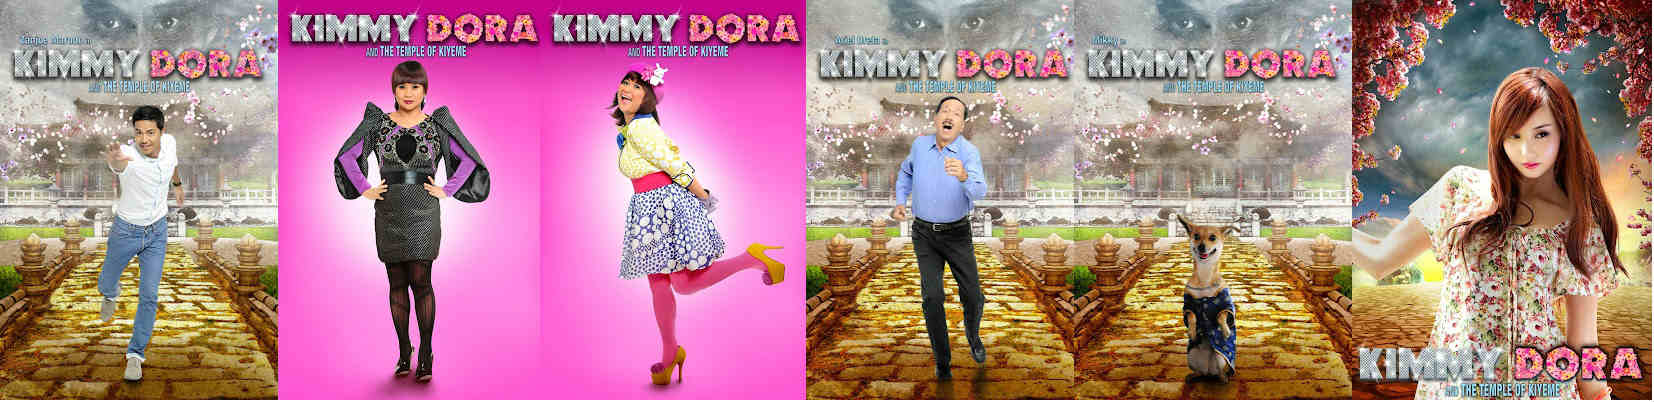 THEY'RE BACK: Kimmy Dora & The Temple of Kiyeme scores big in the box-office